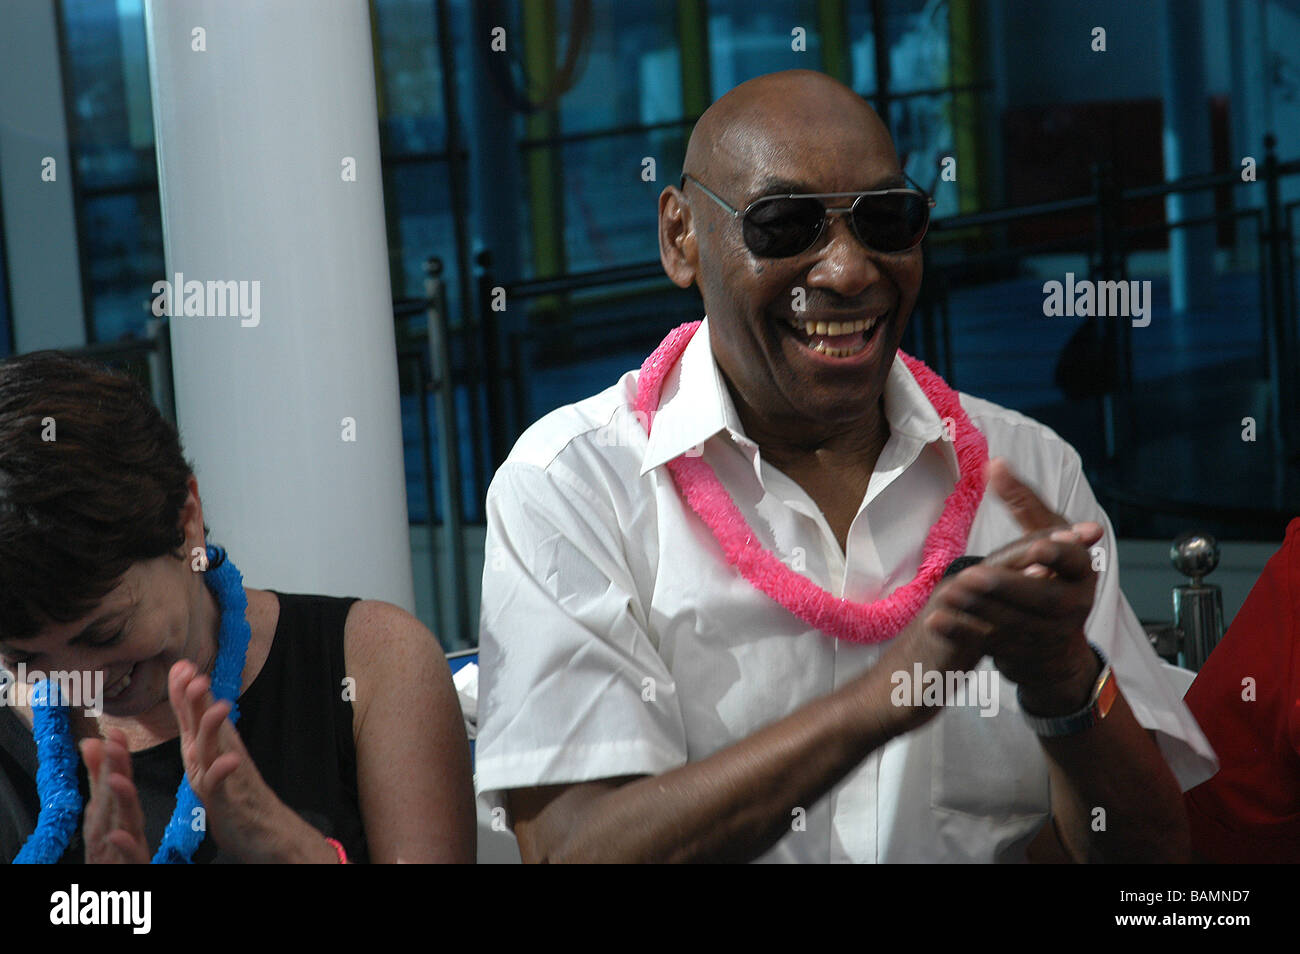 Frankie Manning cruising around the Caribbean on his 90th birthday cruise, May 2004 (26 May 1914 - 27 April 2009) - Stock Image